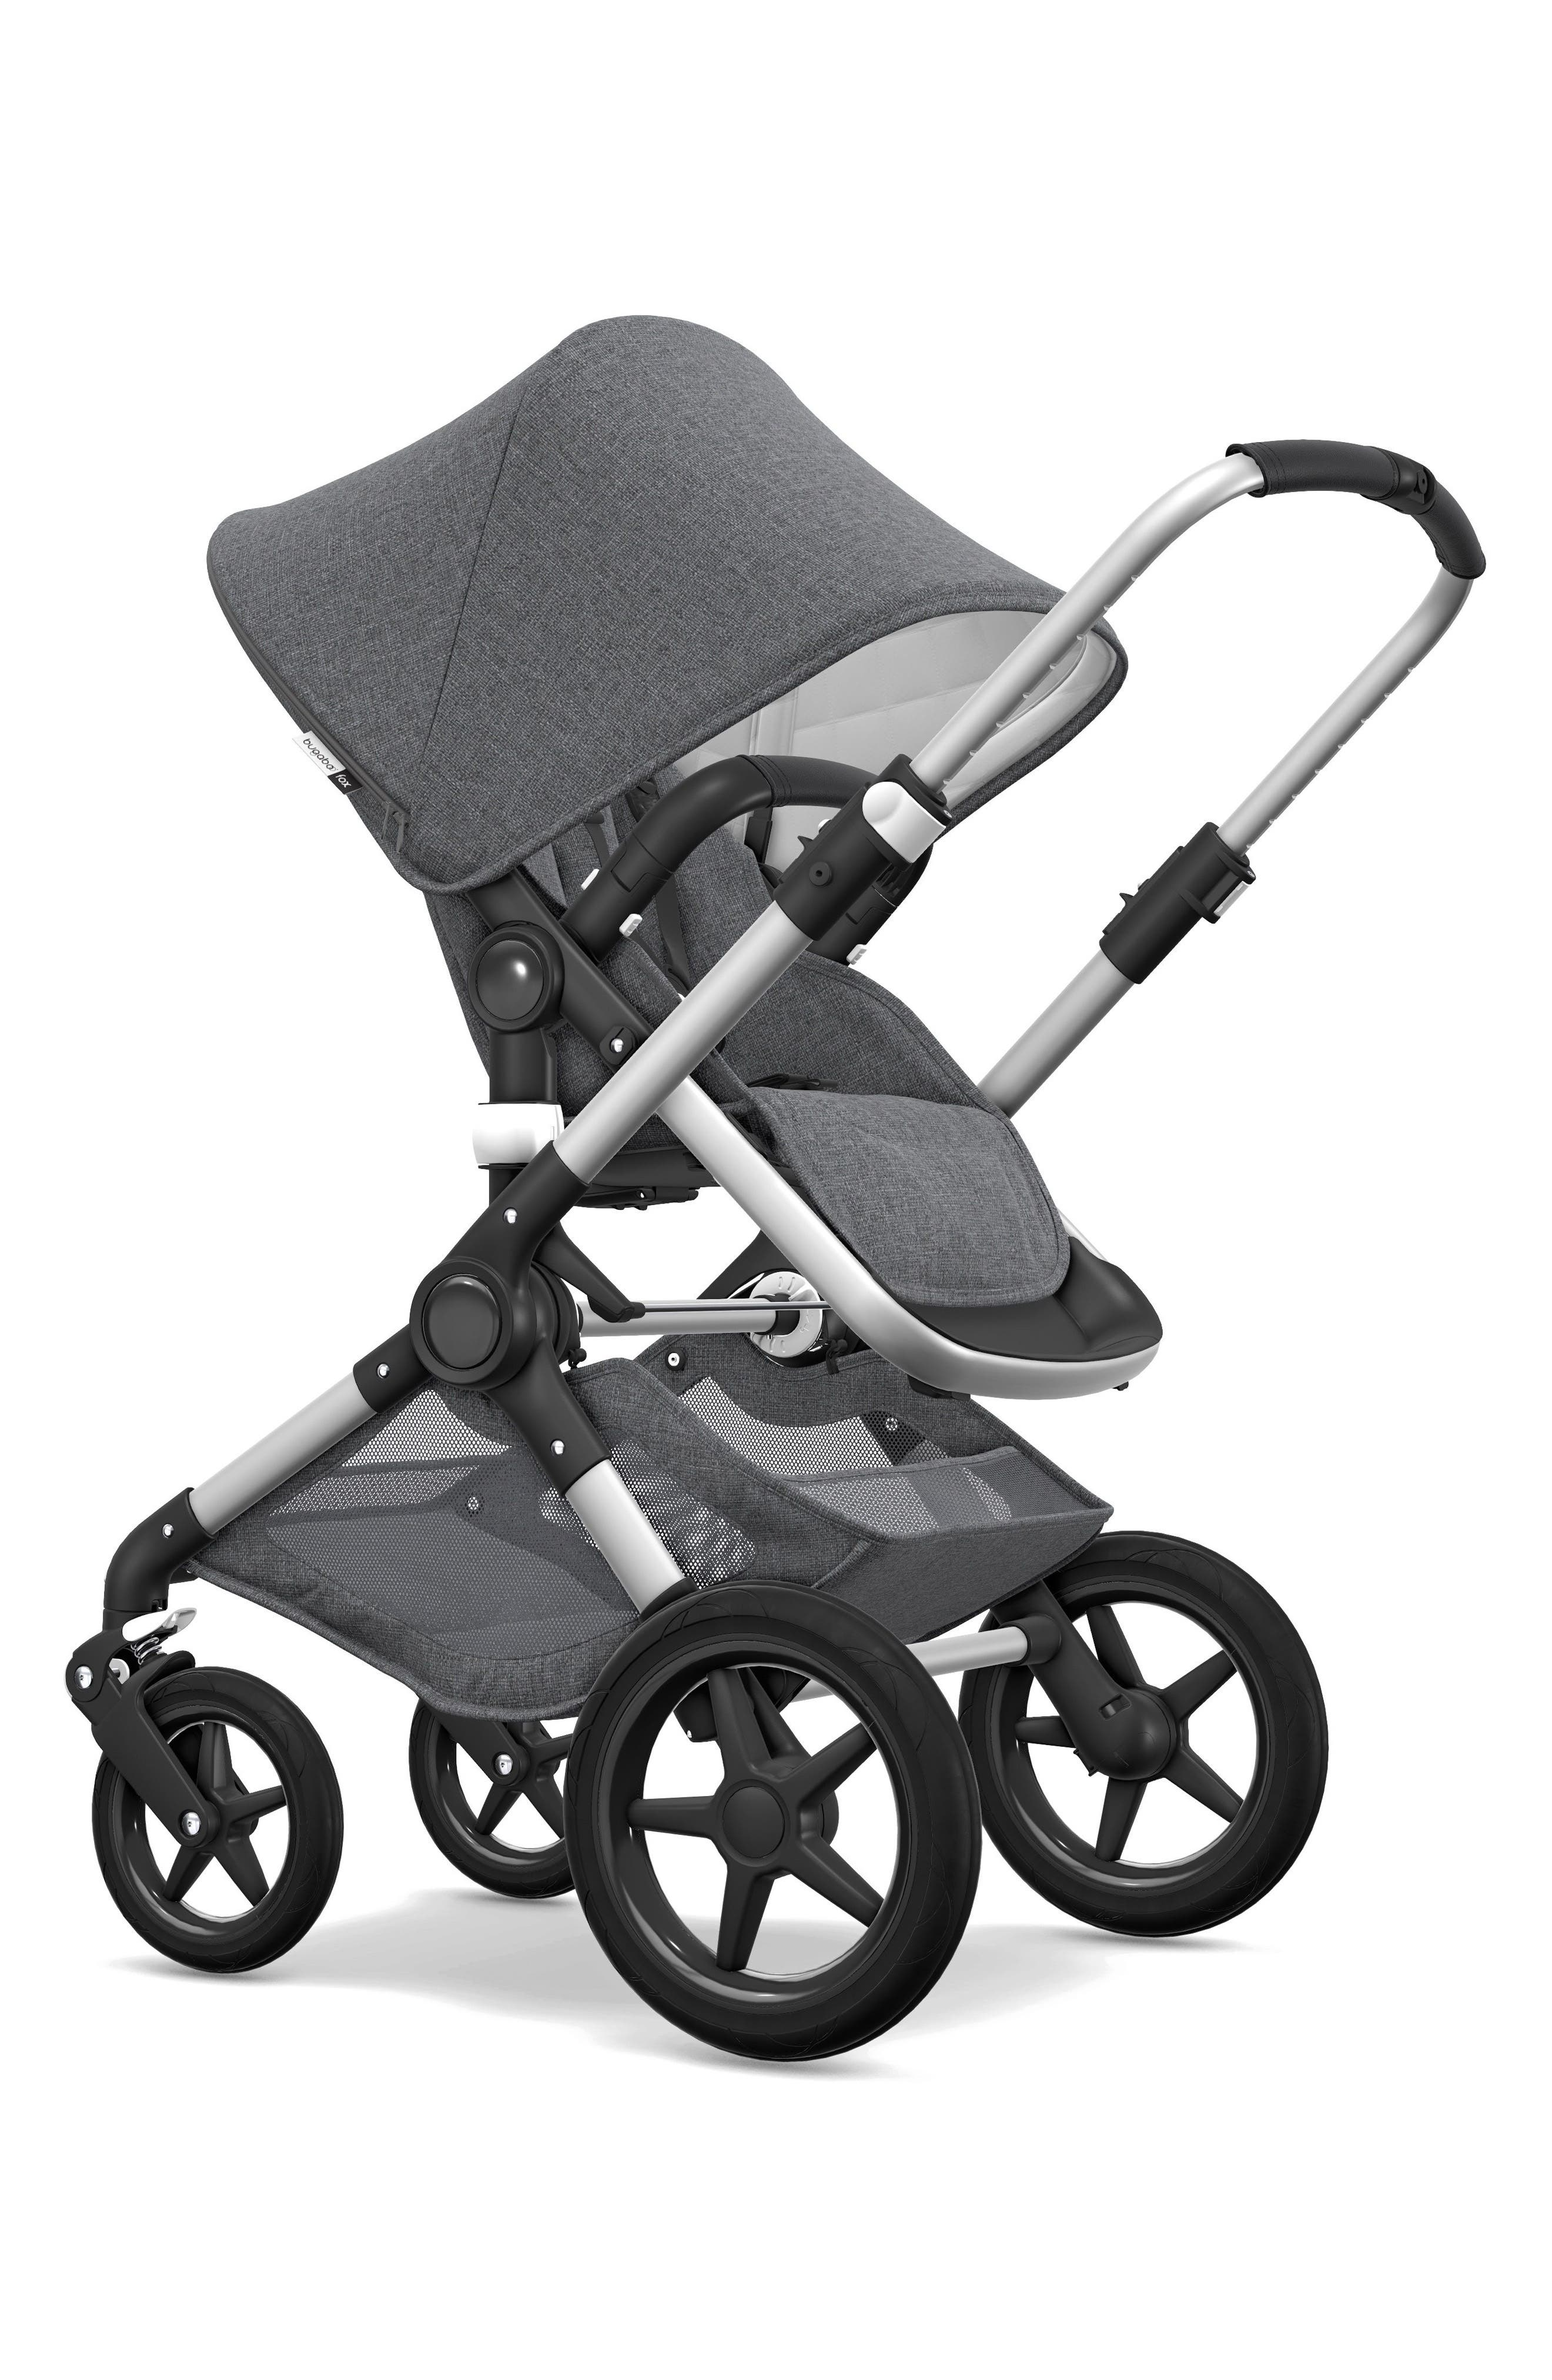 Fox Classic Complete Stroller with Bassinet,                             Alternate thumbnail 3, color,                             GREY MELANGE/ ALUMINUM